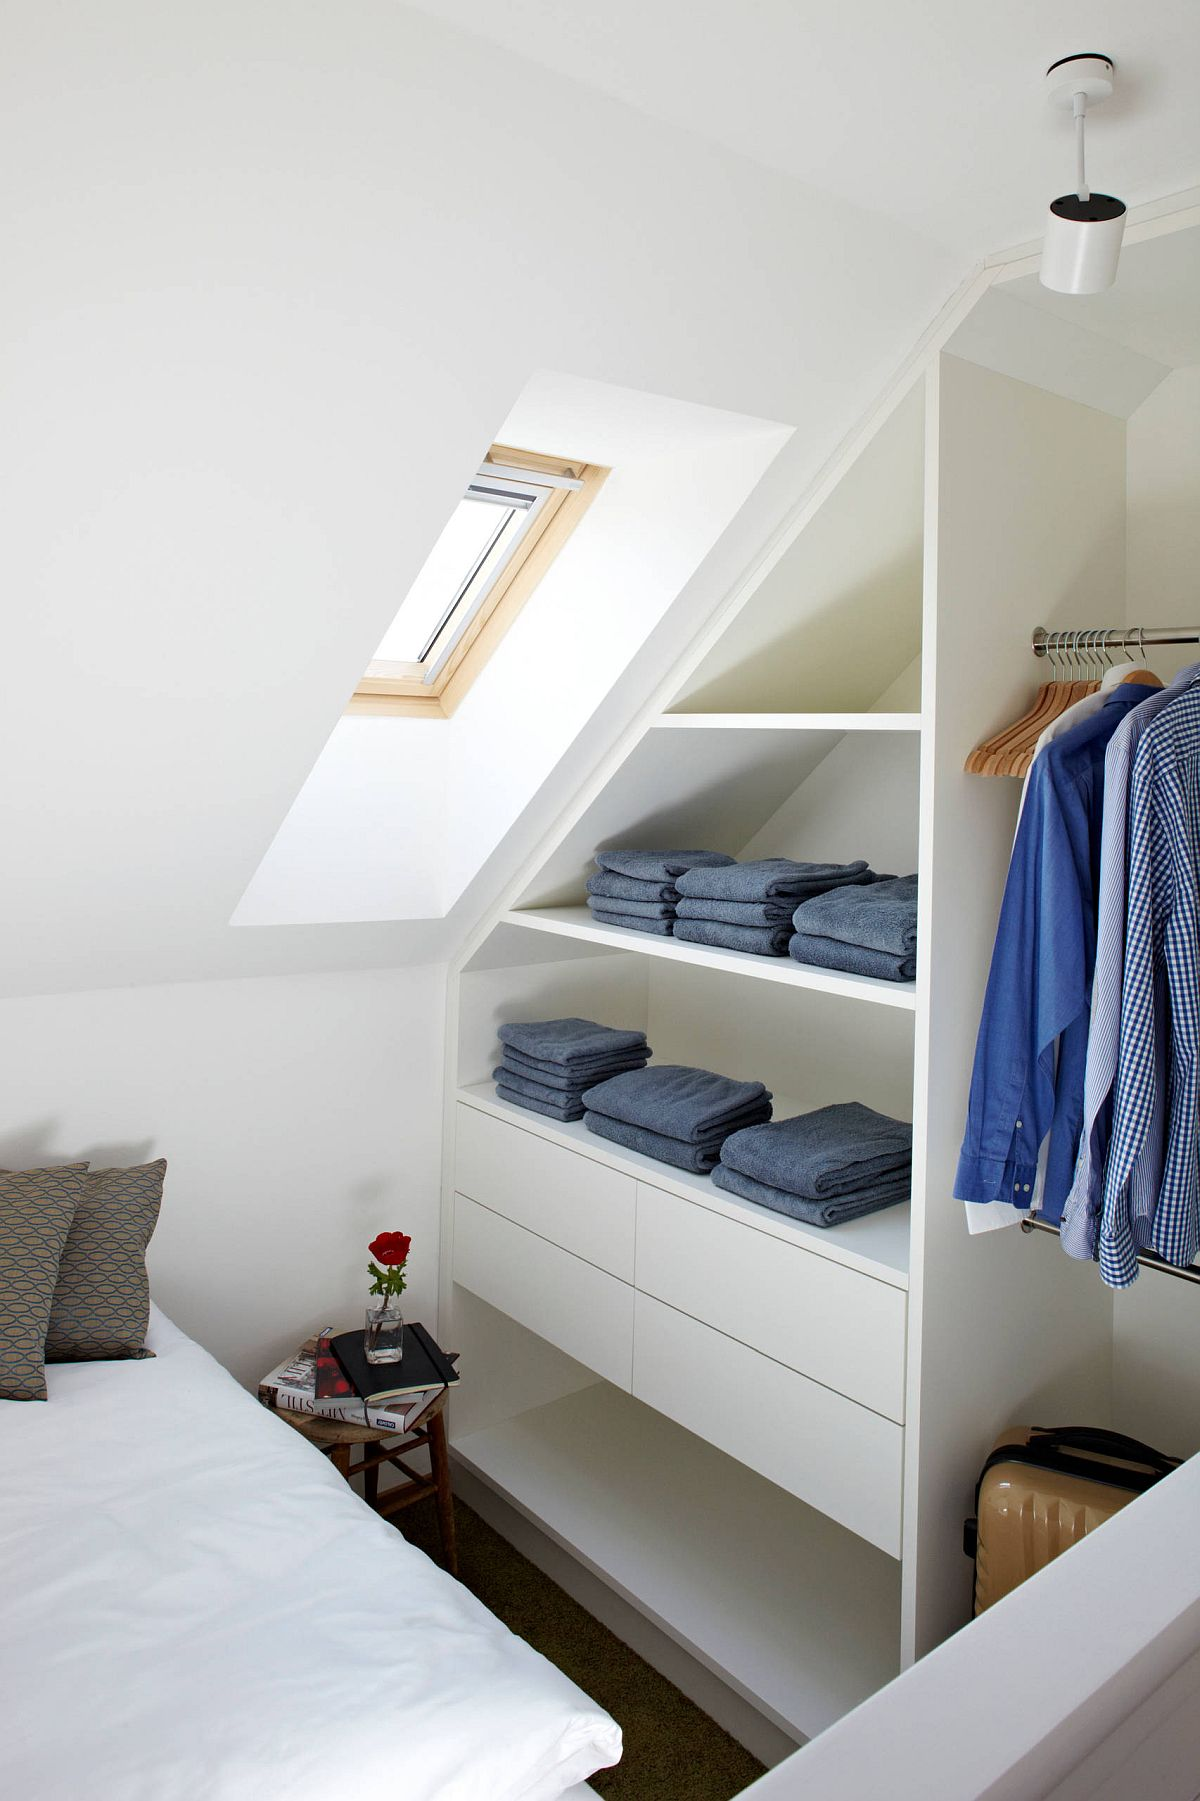 Small attic bedroom closet with neatly folded clothes and lots of shelf space